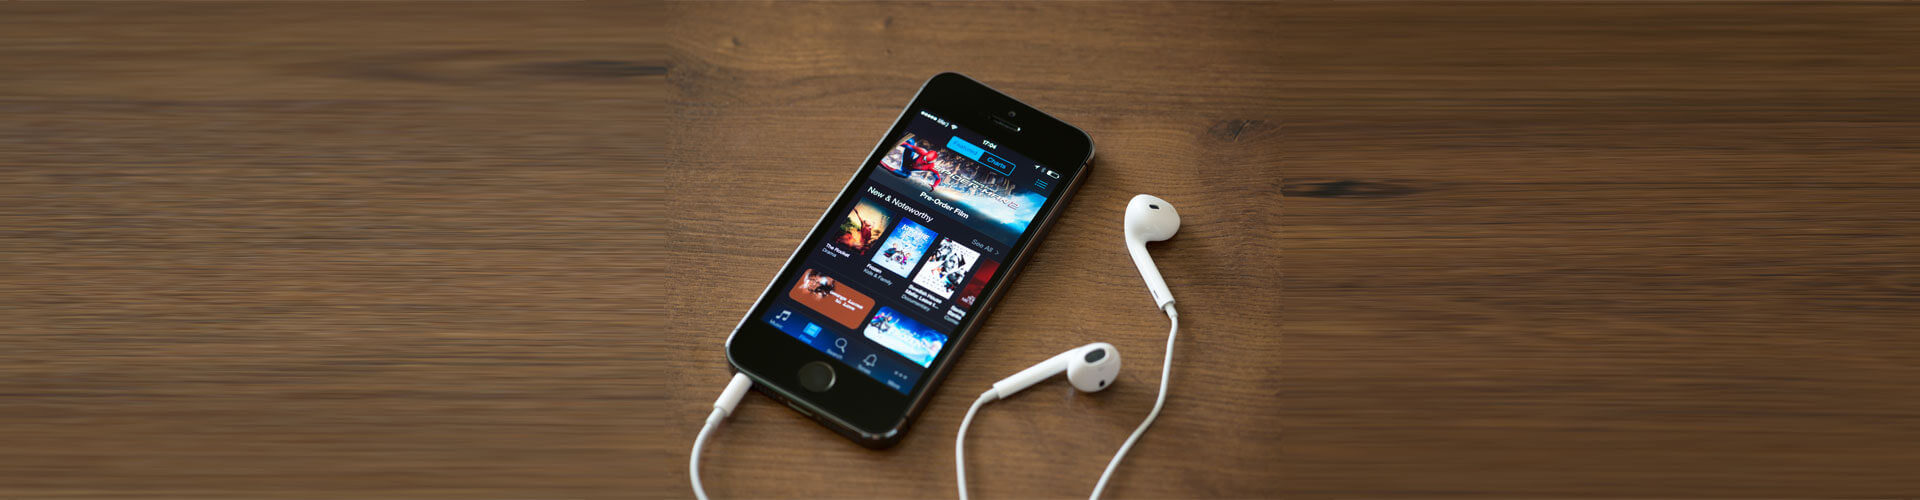 how to successfully market music online